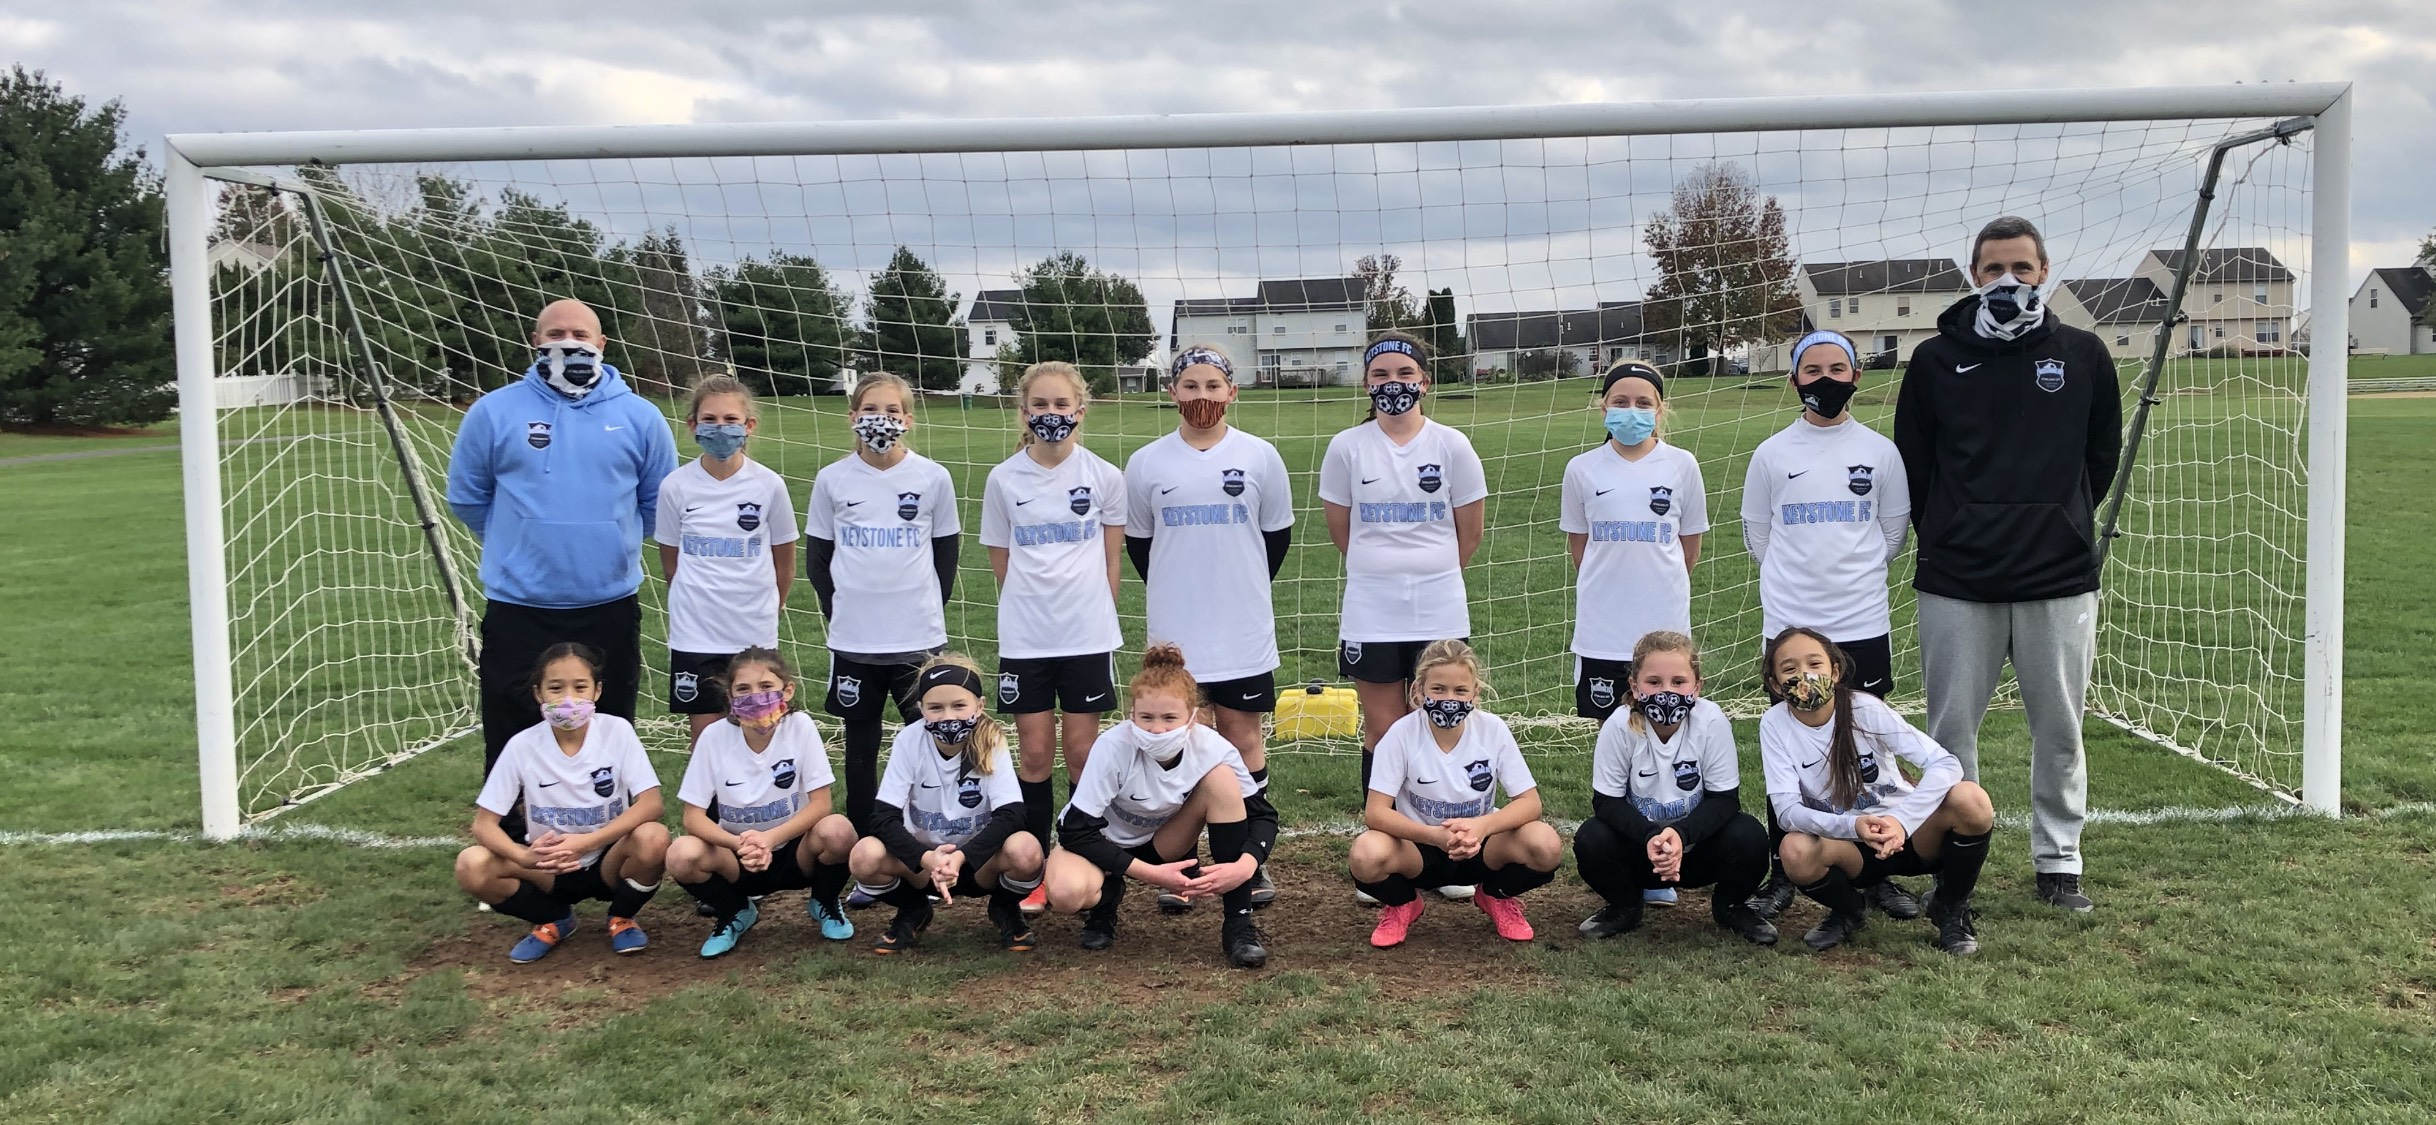 South Elite 09G Win CPYSL Division